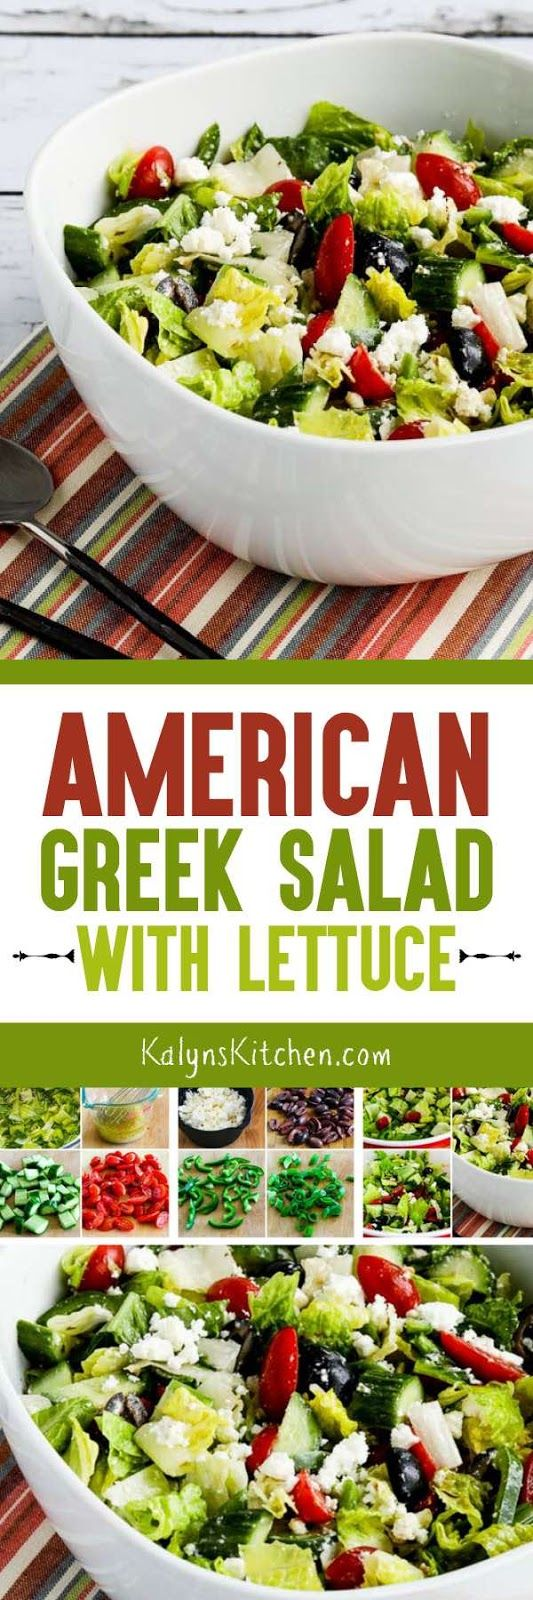 American Greek Salad (with Lettuce) is one of my signature salads that I make all summer long for parties and dinner guests! And I love the addition of lettuce to this salad, even though Greek Salad never has lettuce in Greece. This tasty salad is low-carb, Keto, low-glycemic, gluten-free, and South Beach Diet friendly. [found on KalynsKitchen.com]